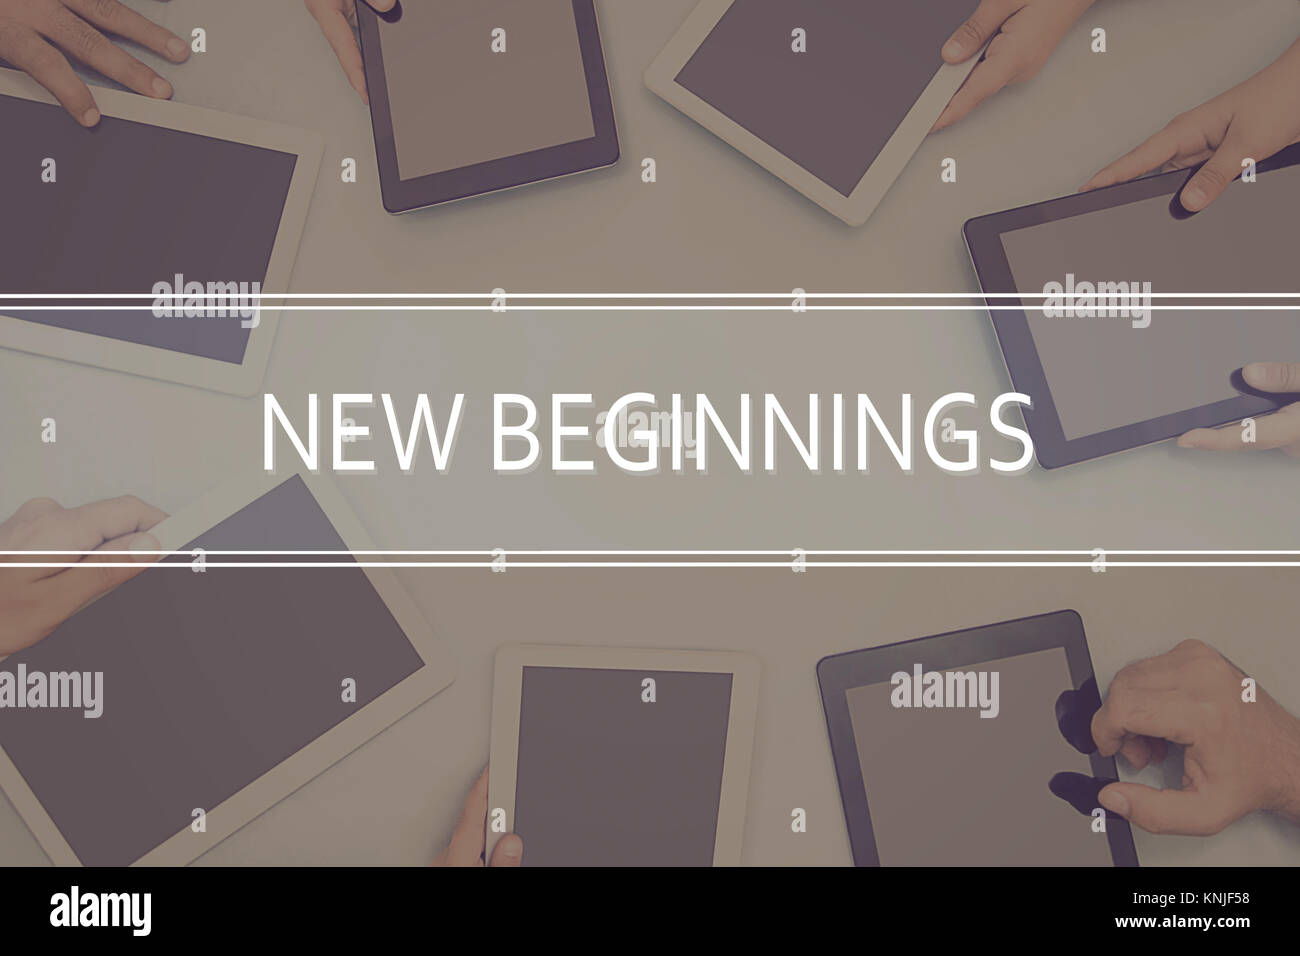 NEW BEGINNINGS CONCEPT Business Concept. - Stock Image